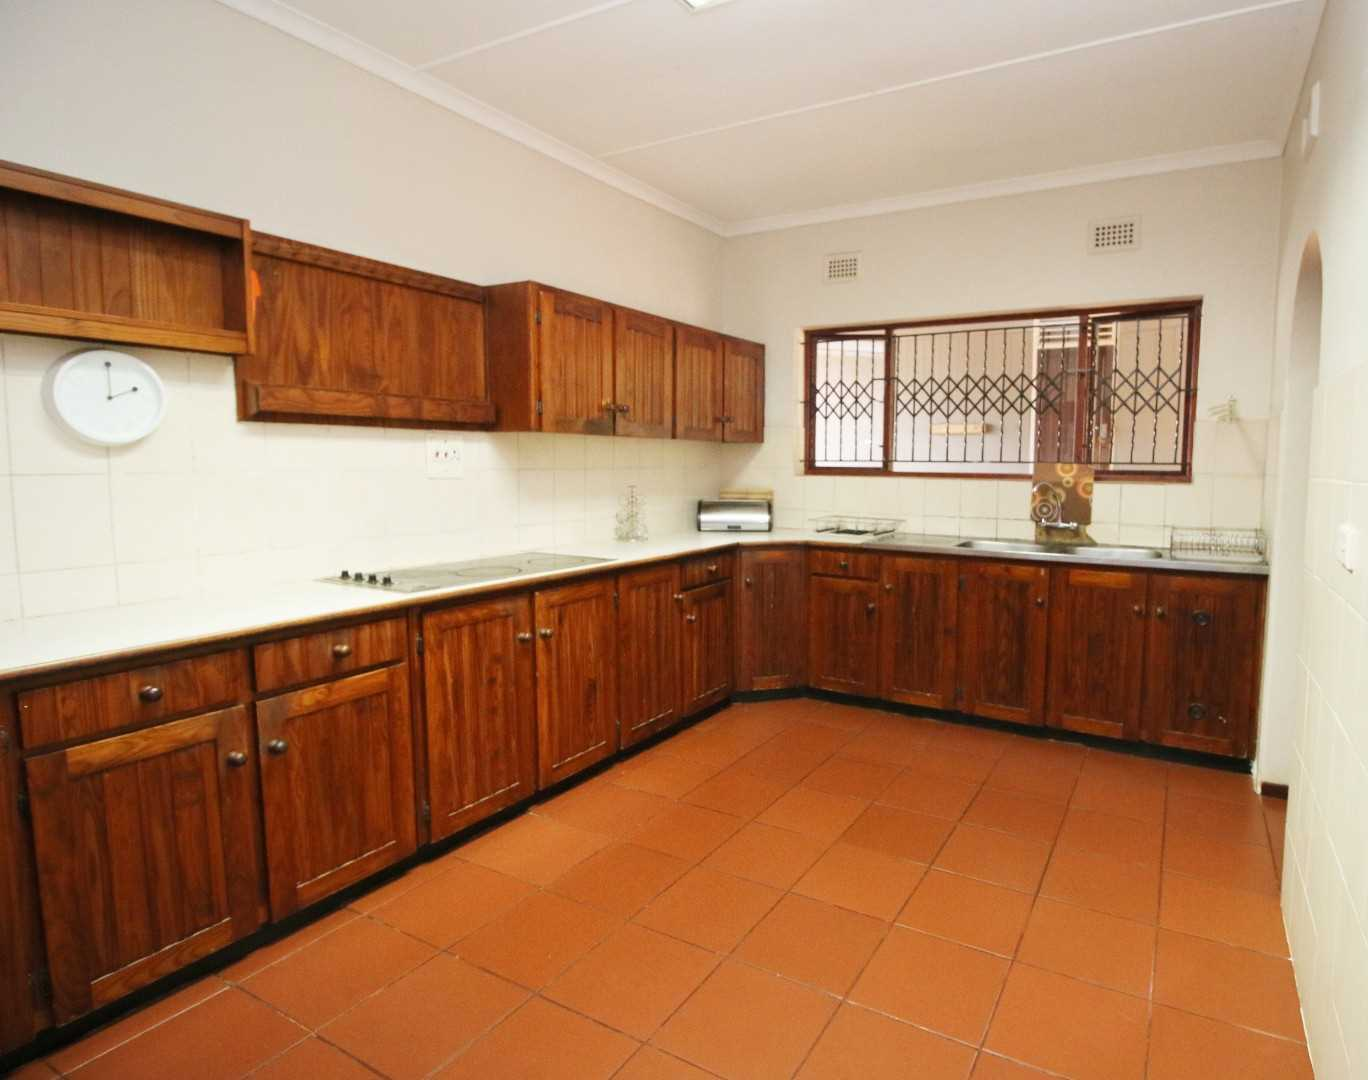 Spacious kitchen with ample BIC, Double sink and separate cook top